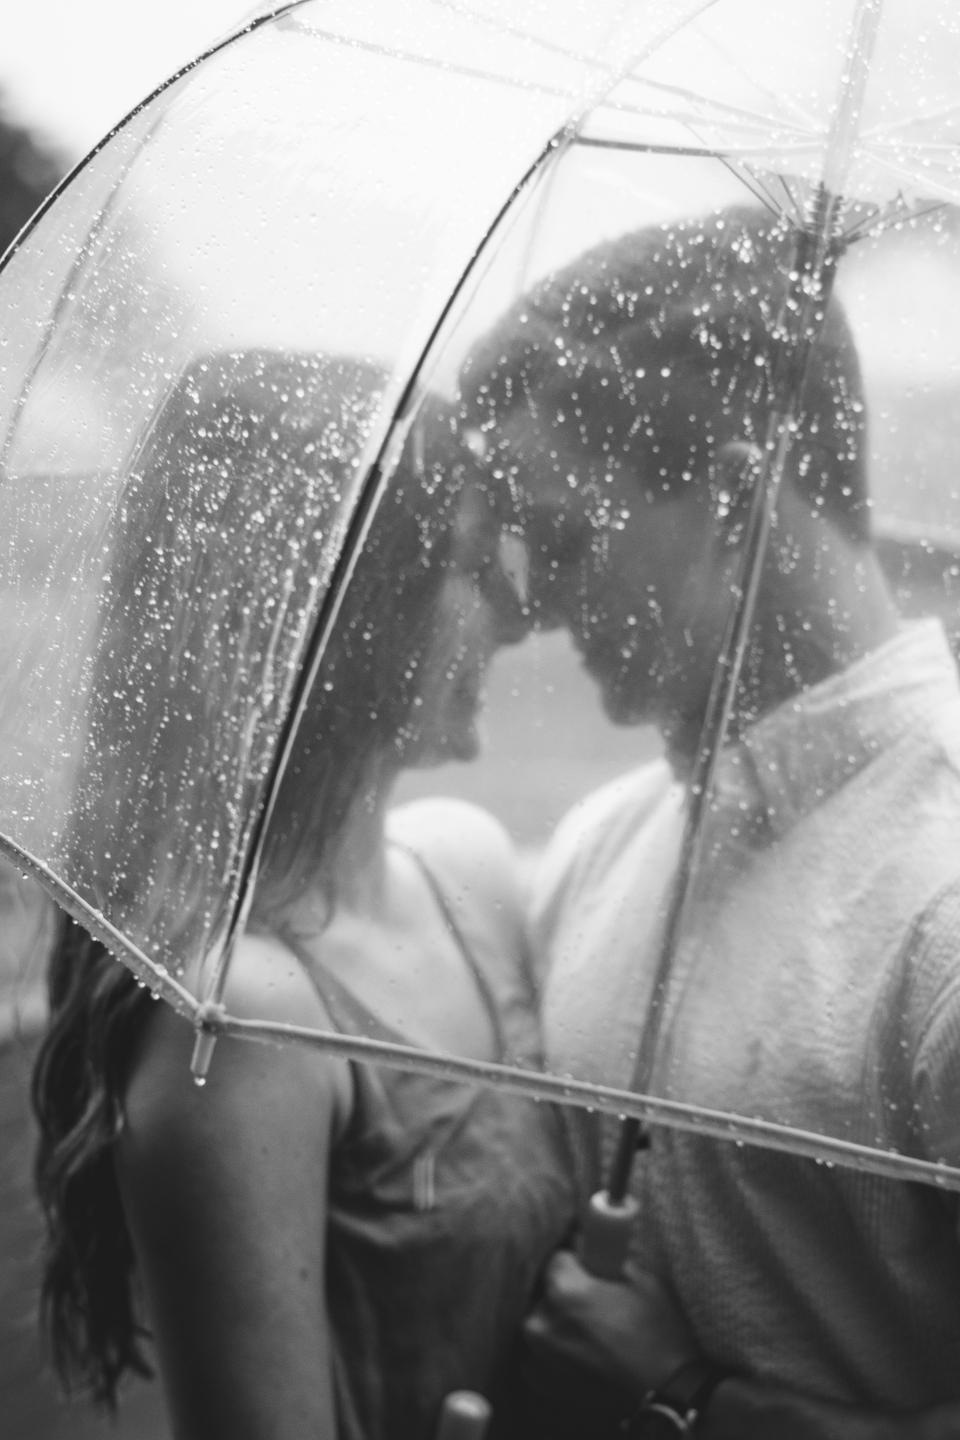 couple love romance girl guy umbrella raining wet black and white people